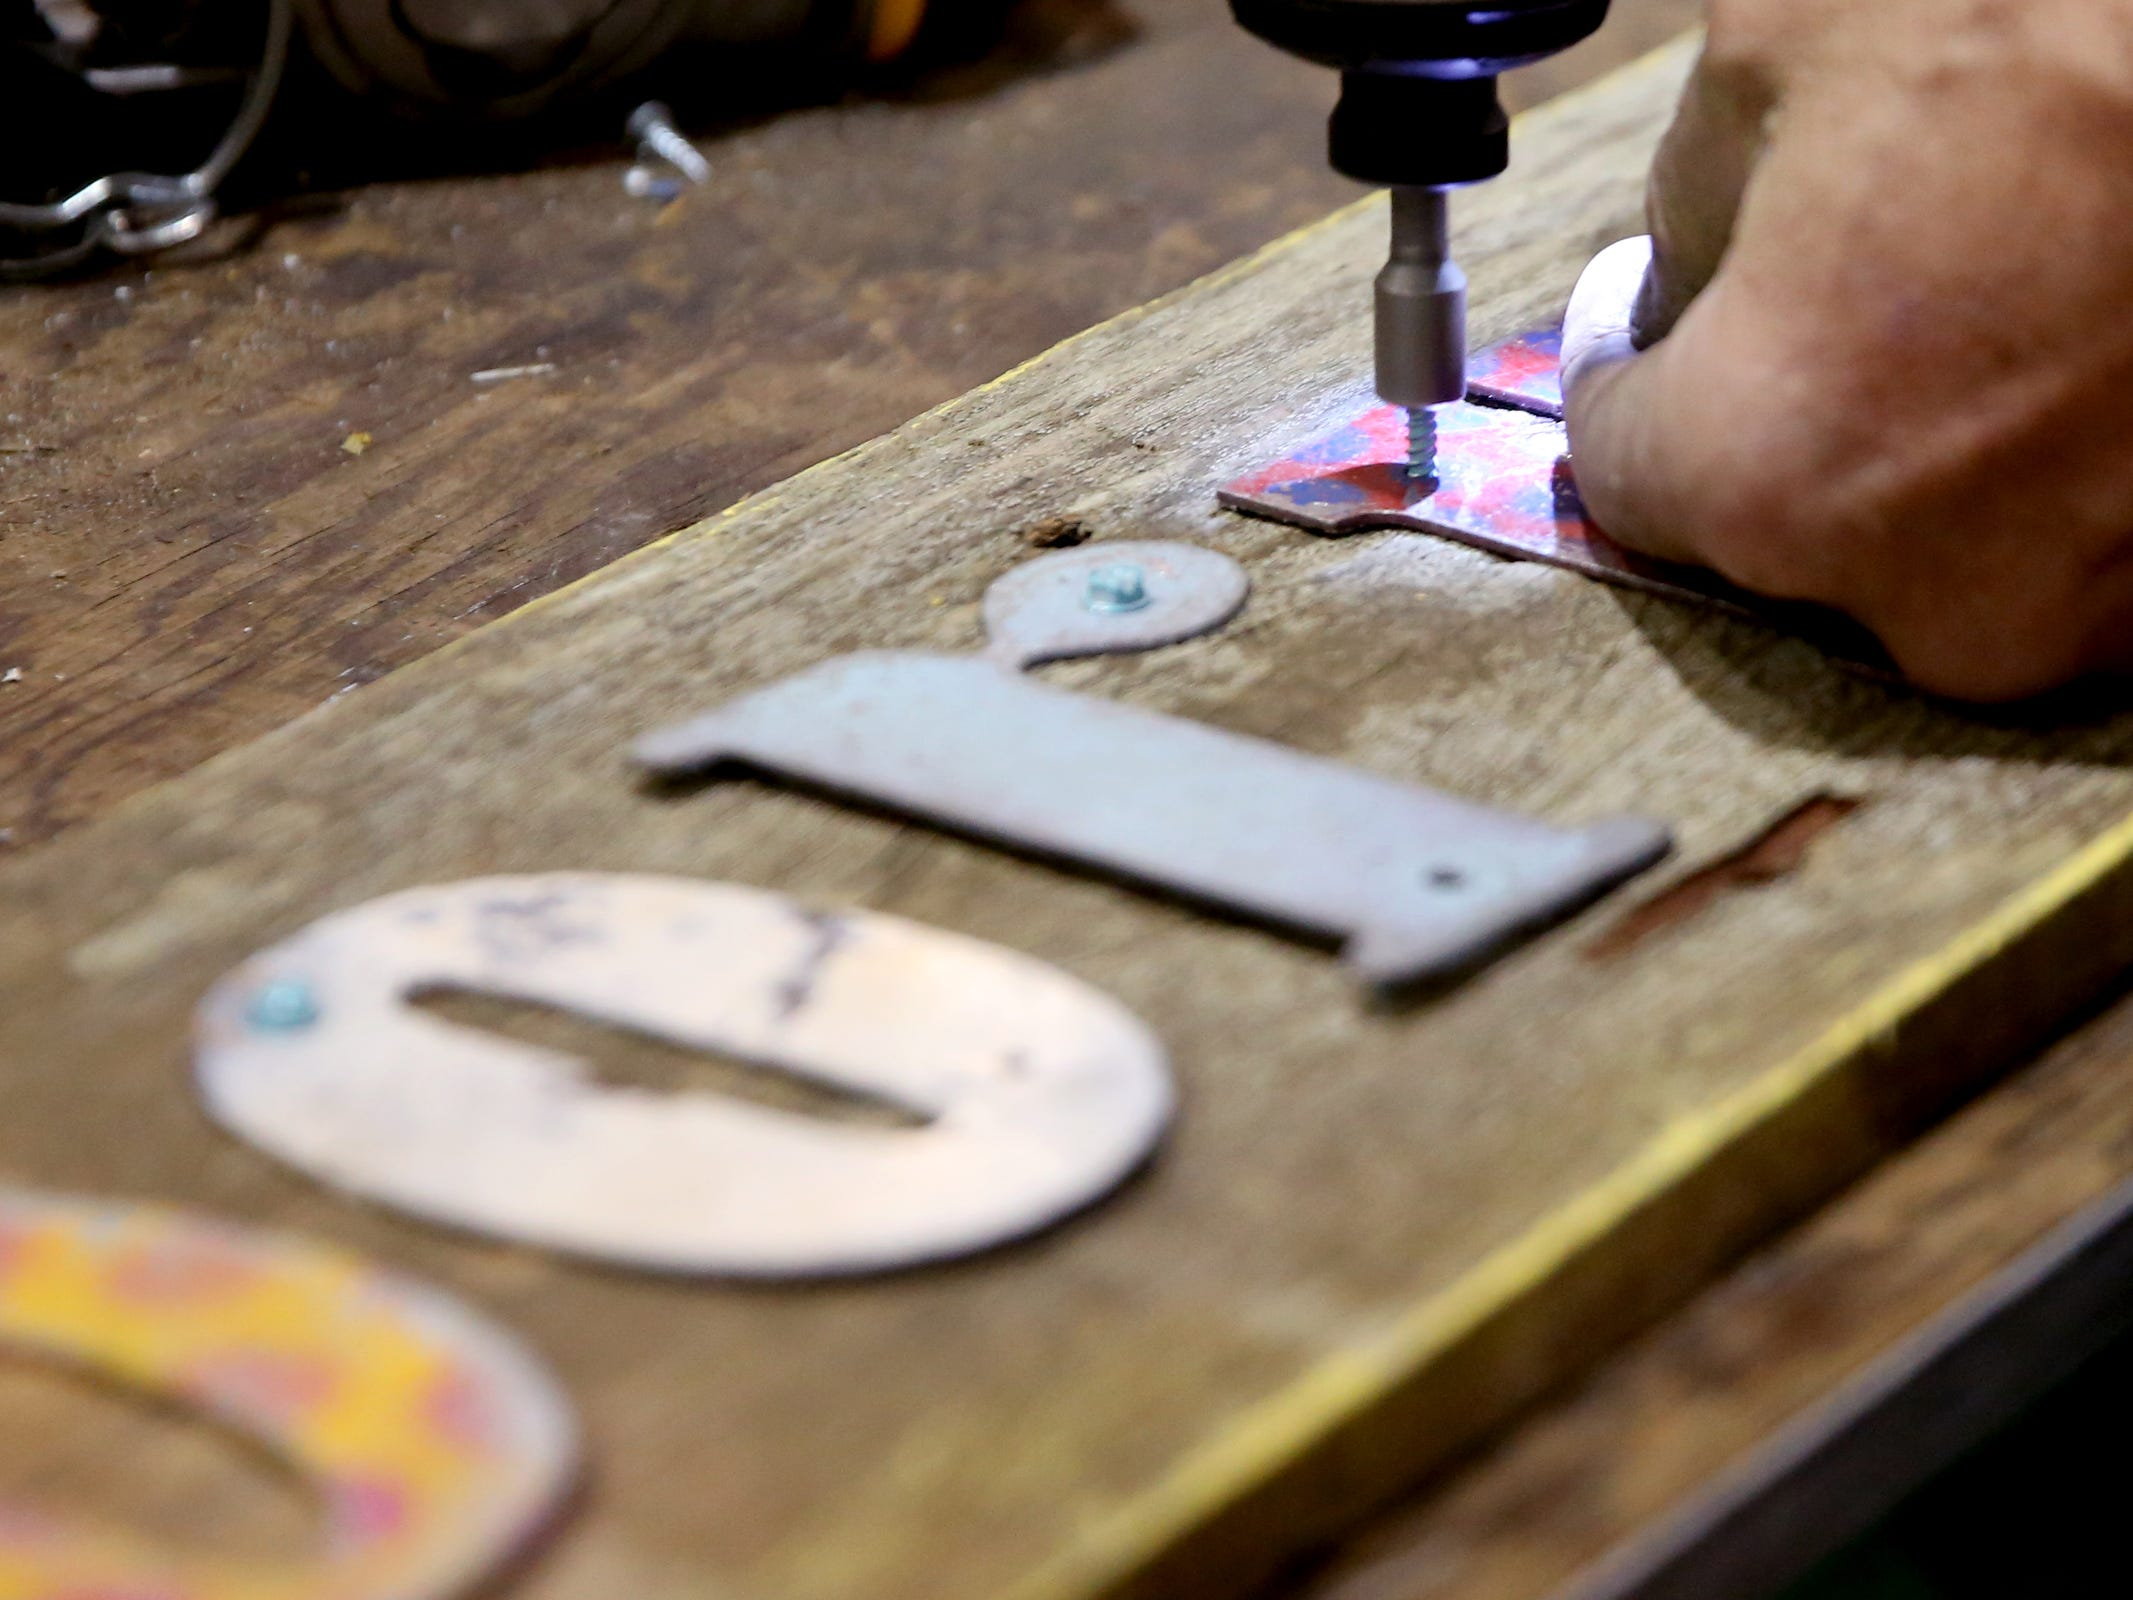 Fred Grandy drills metal letters to a wooden board for a customer during The Great Junk Hunt, a traveling vintage market, at the Oregon State Fairgrounds in Salem on April 13, 2019.